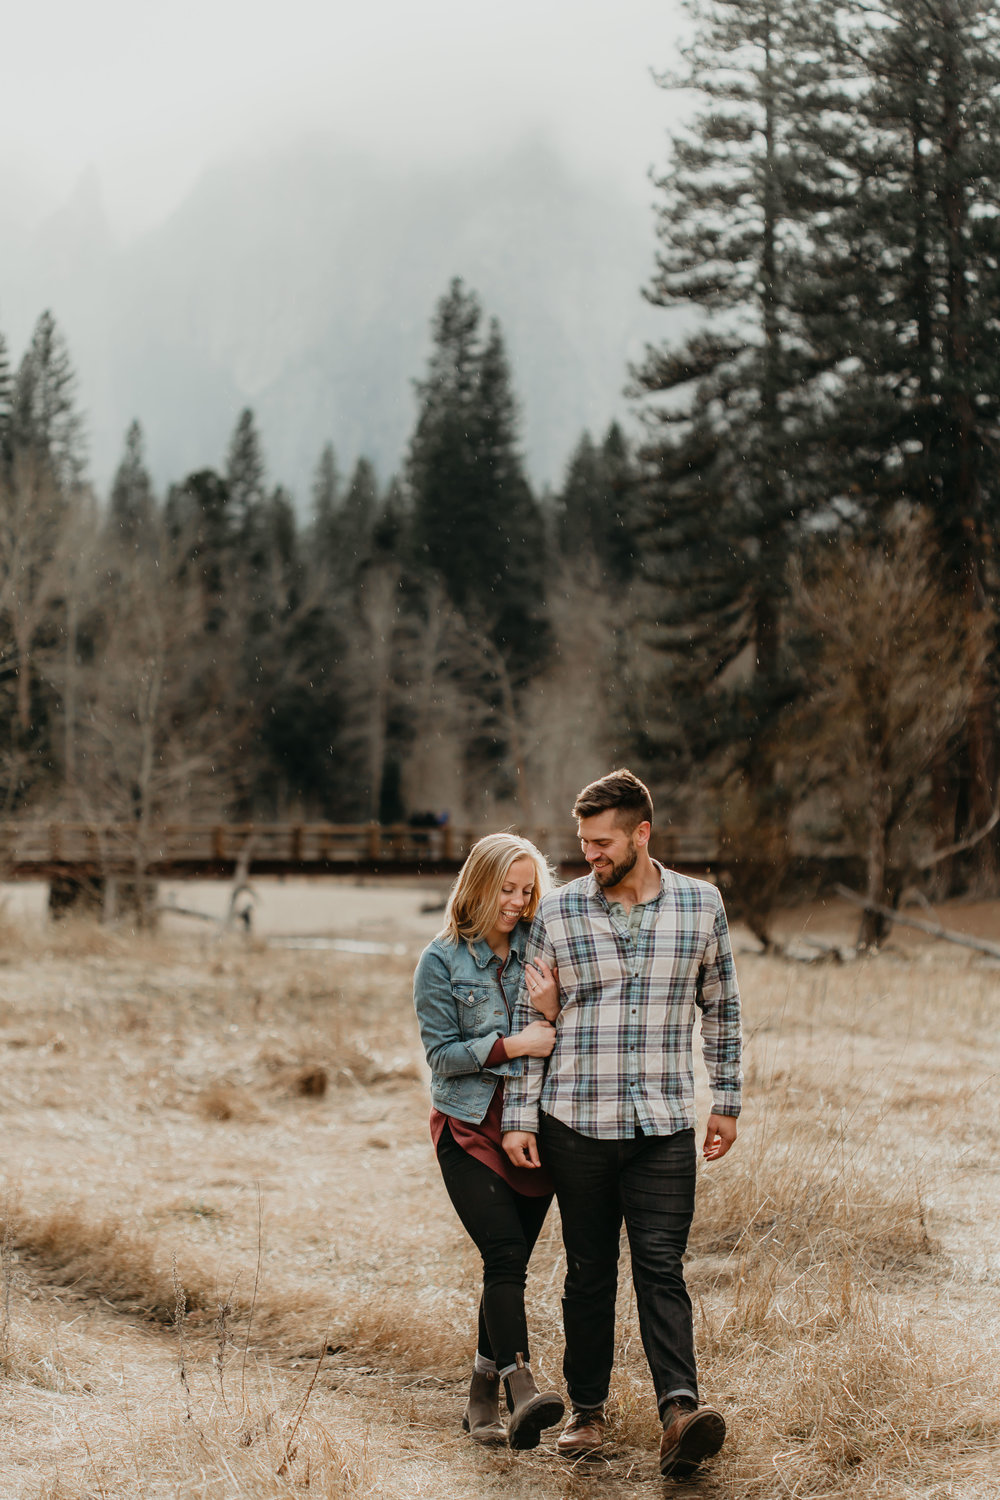 nicole-daacke-photography-yosemite-national-park-engagement-session-yosemite-valley-adventure-session-california-68.jpg